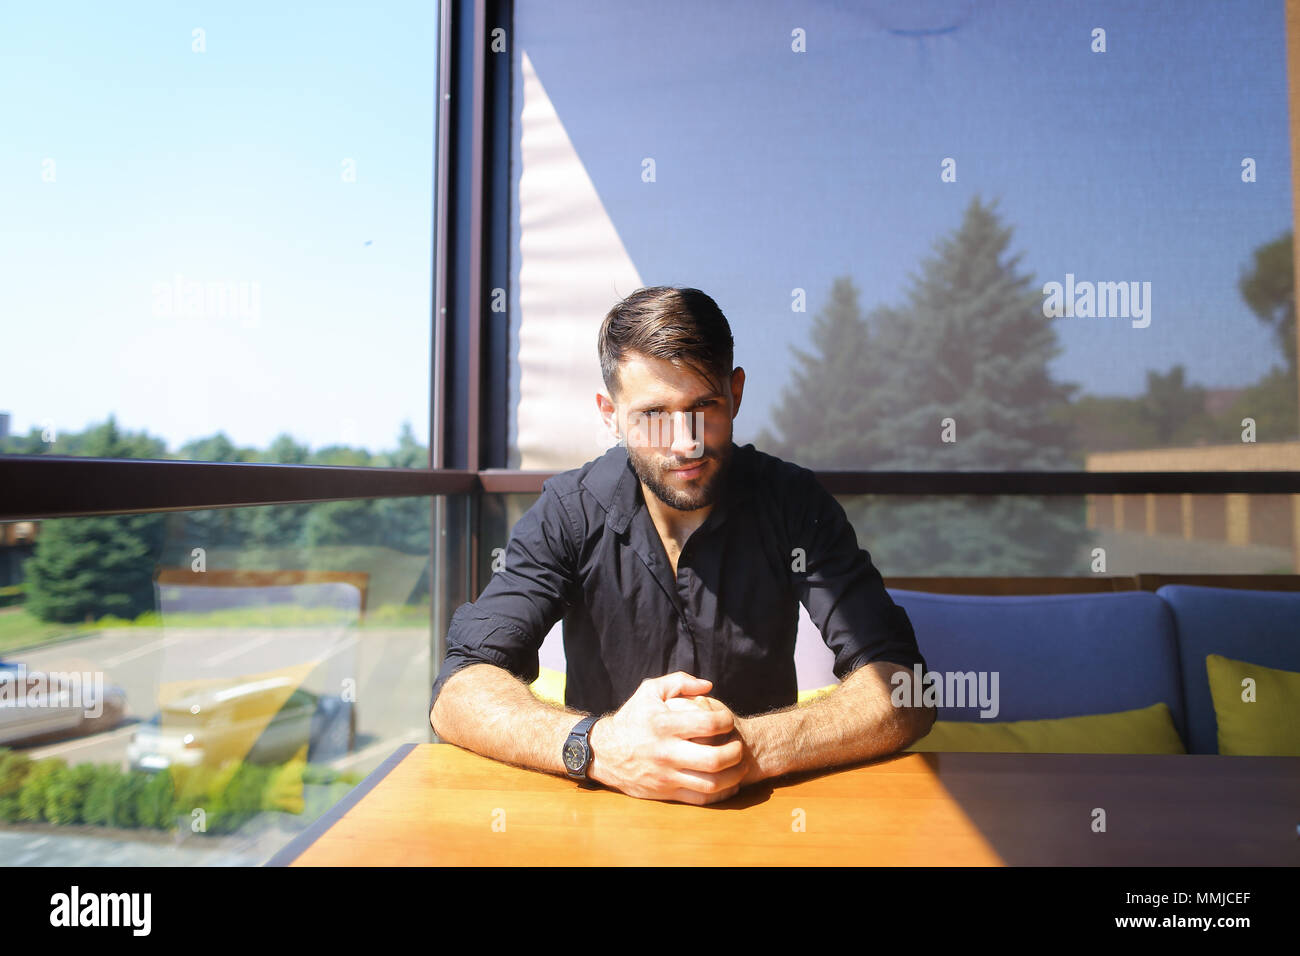 European male manager sitting at office on sofa and wearing black shirt. - Stock Image